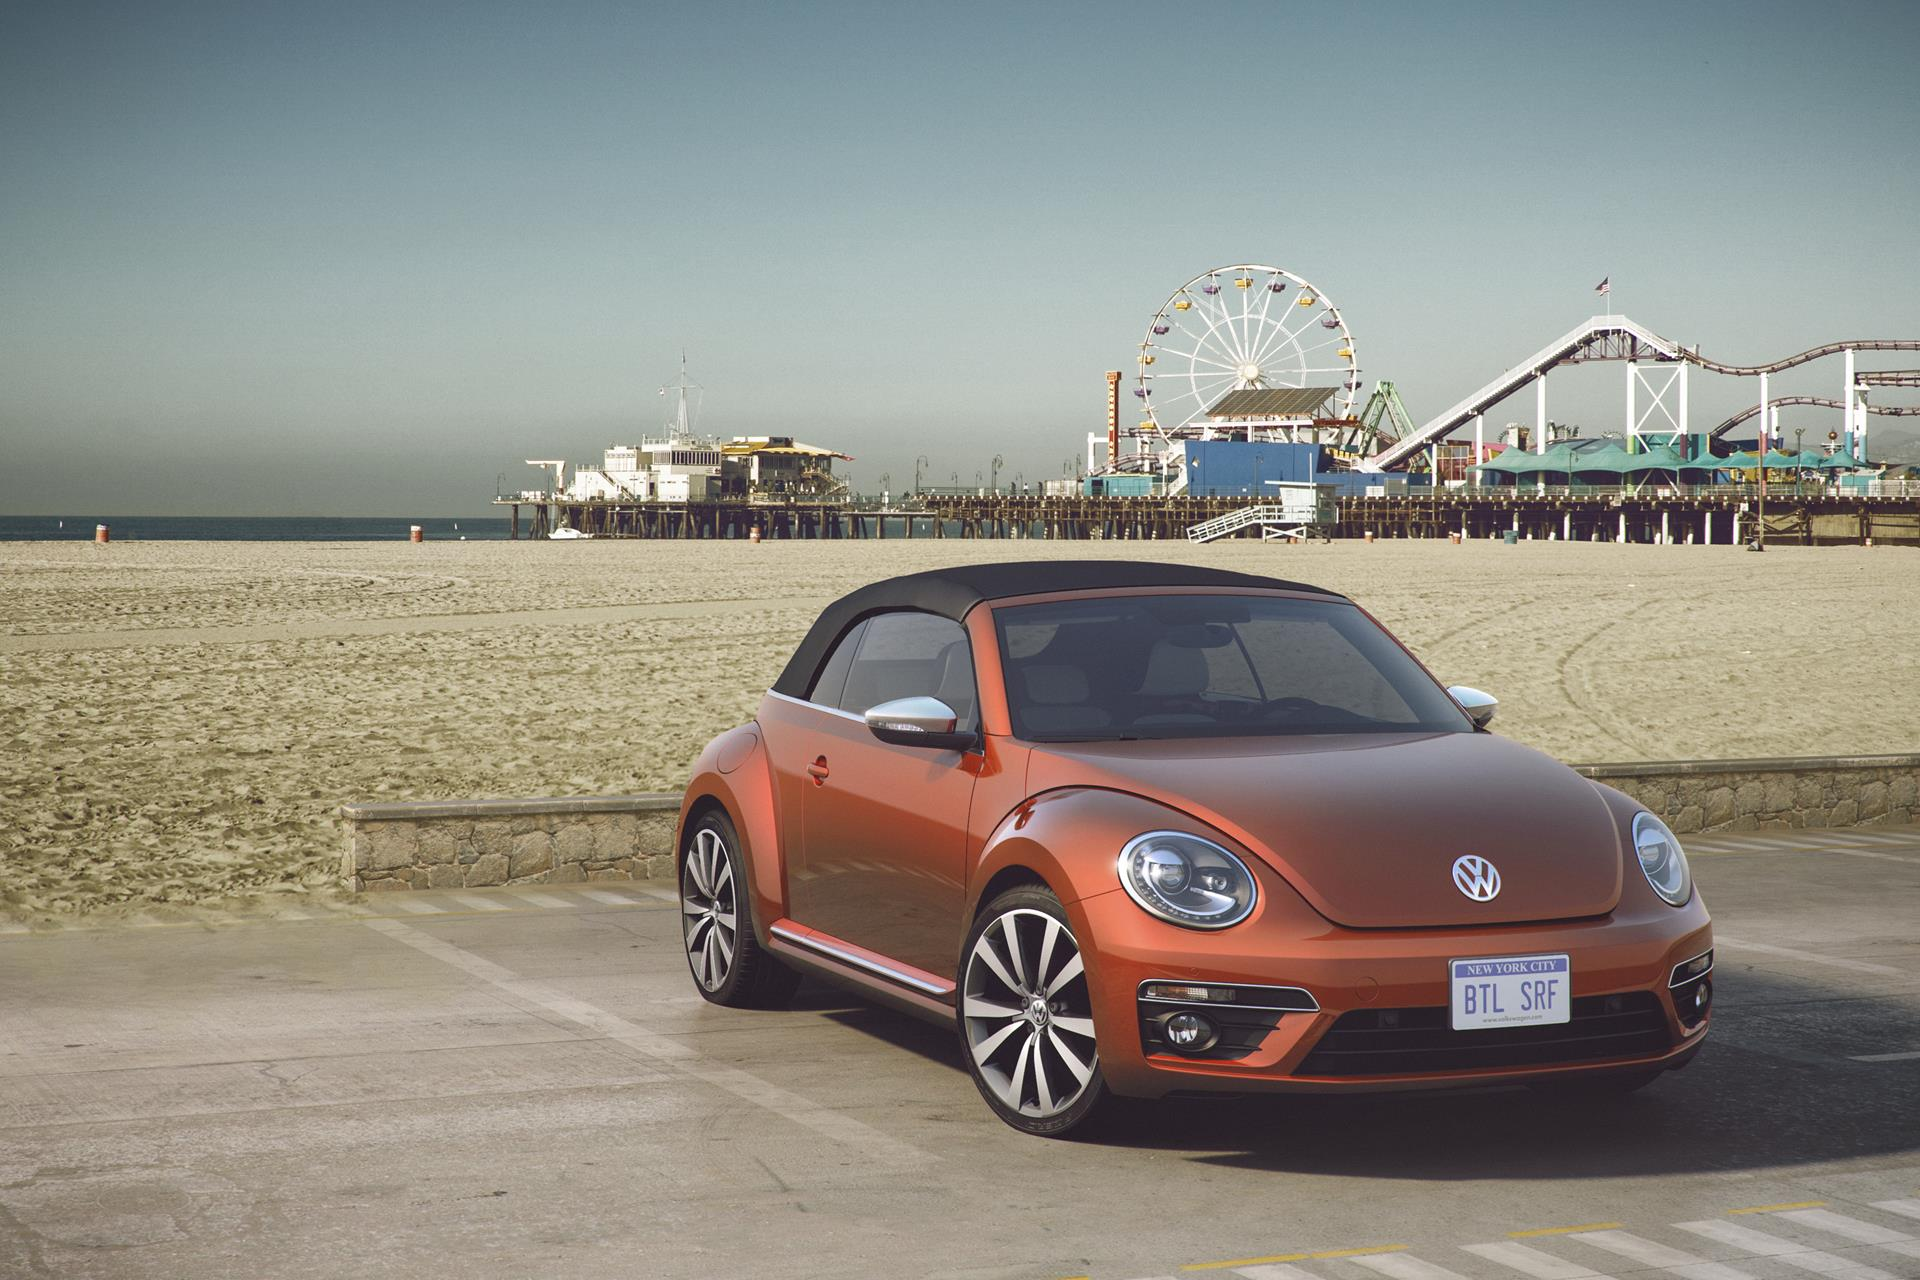 2015 Volkswagen Beetle Convertible Wave News and Information, Research, and Pricing